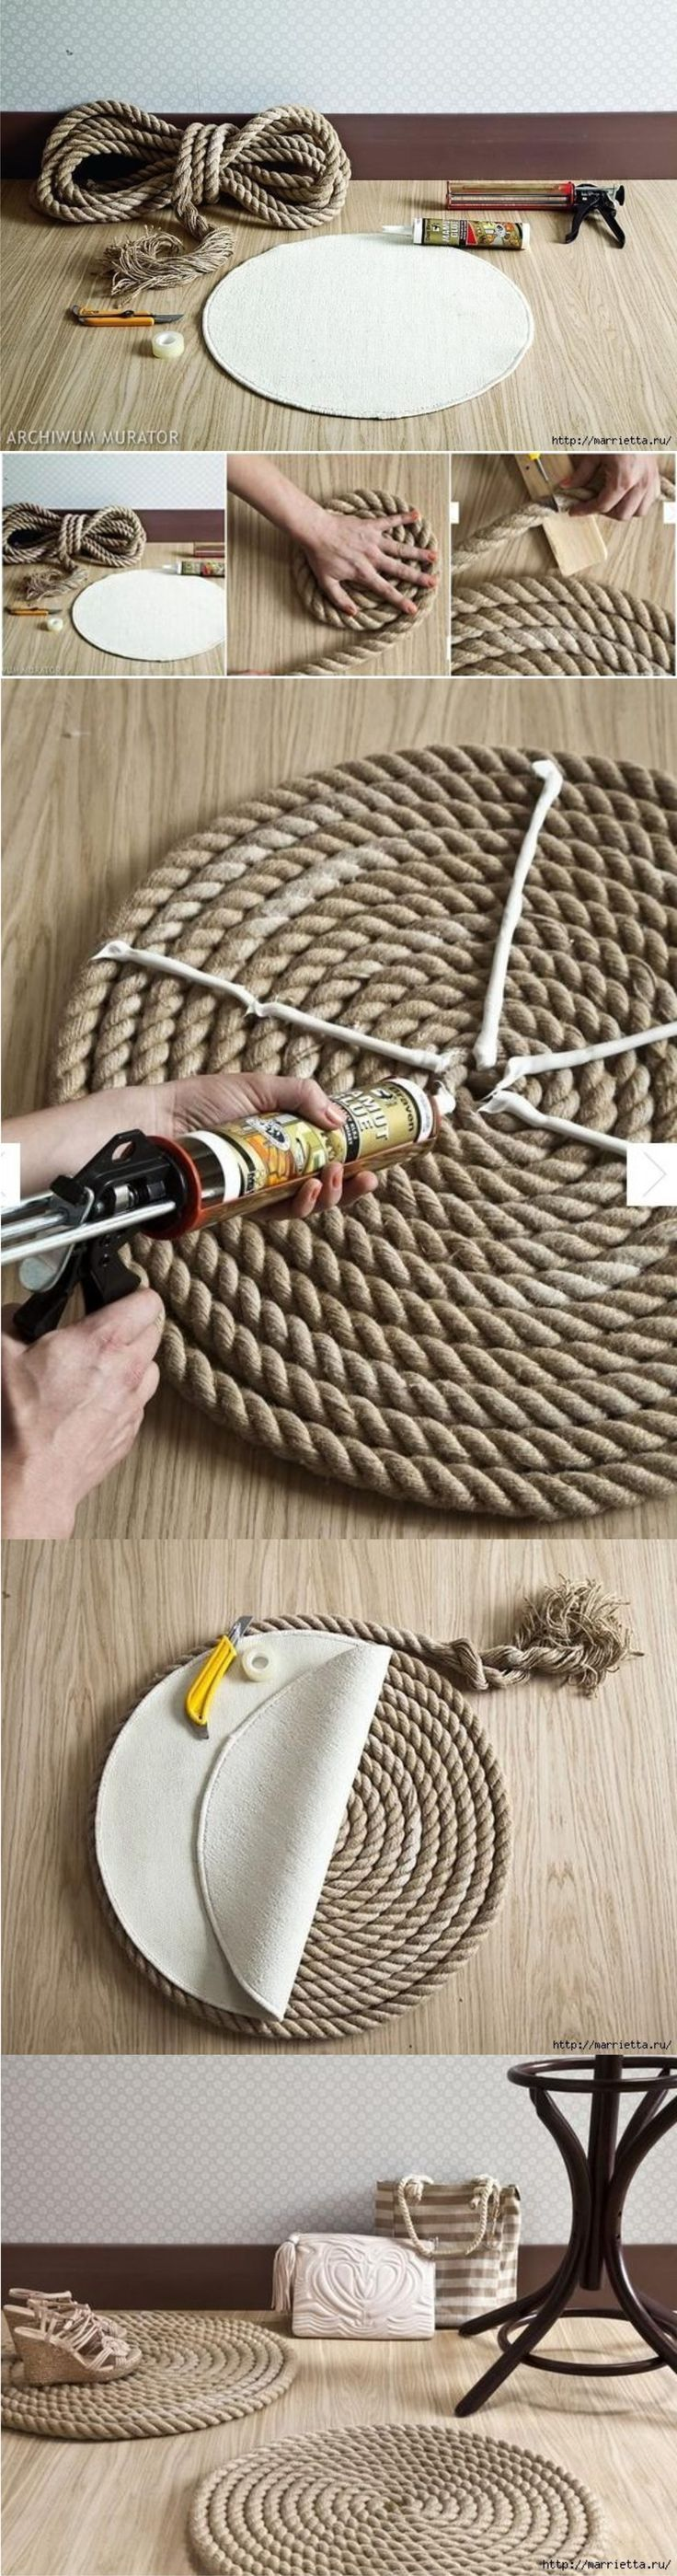 How to's : A #DIY rope rug that's held together with glue makes for an easy-breezy approach to nautical decor.